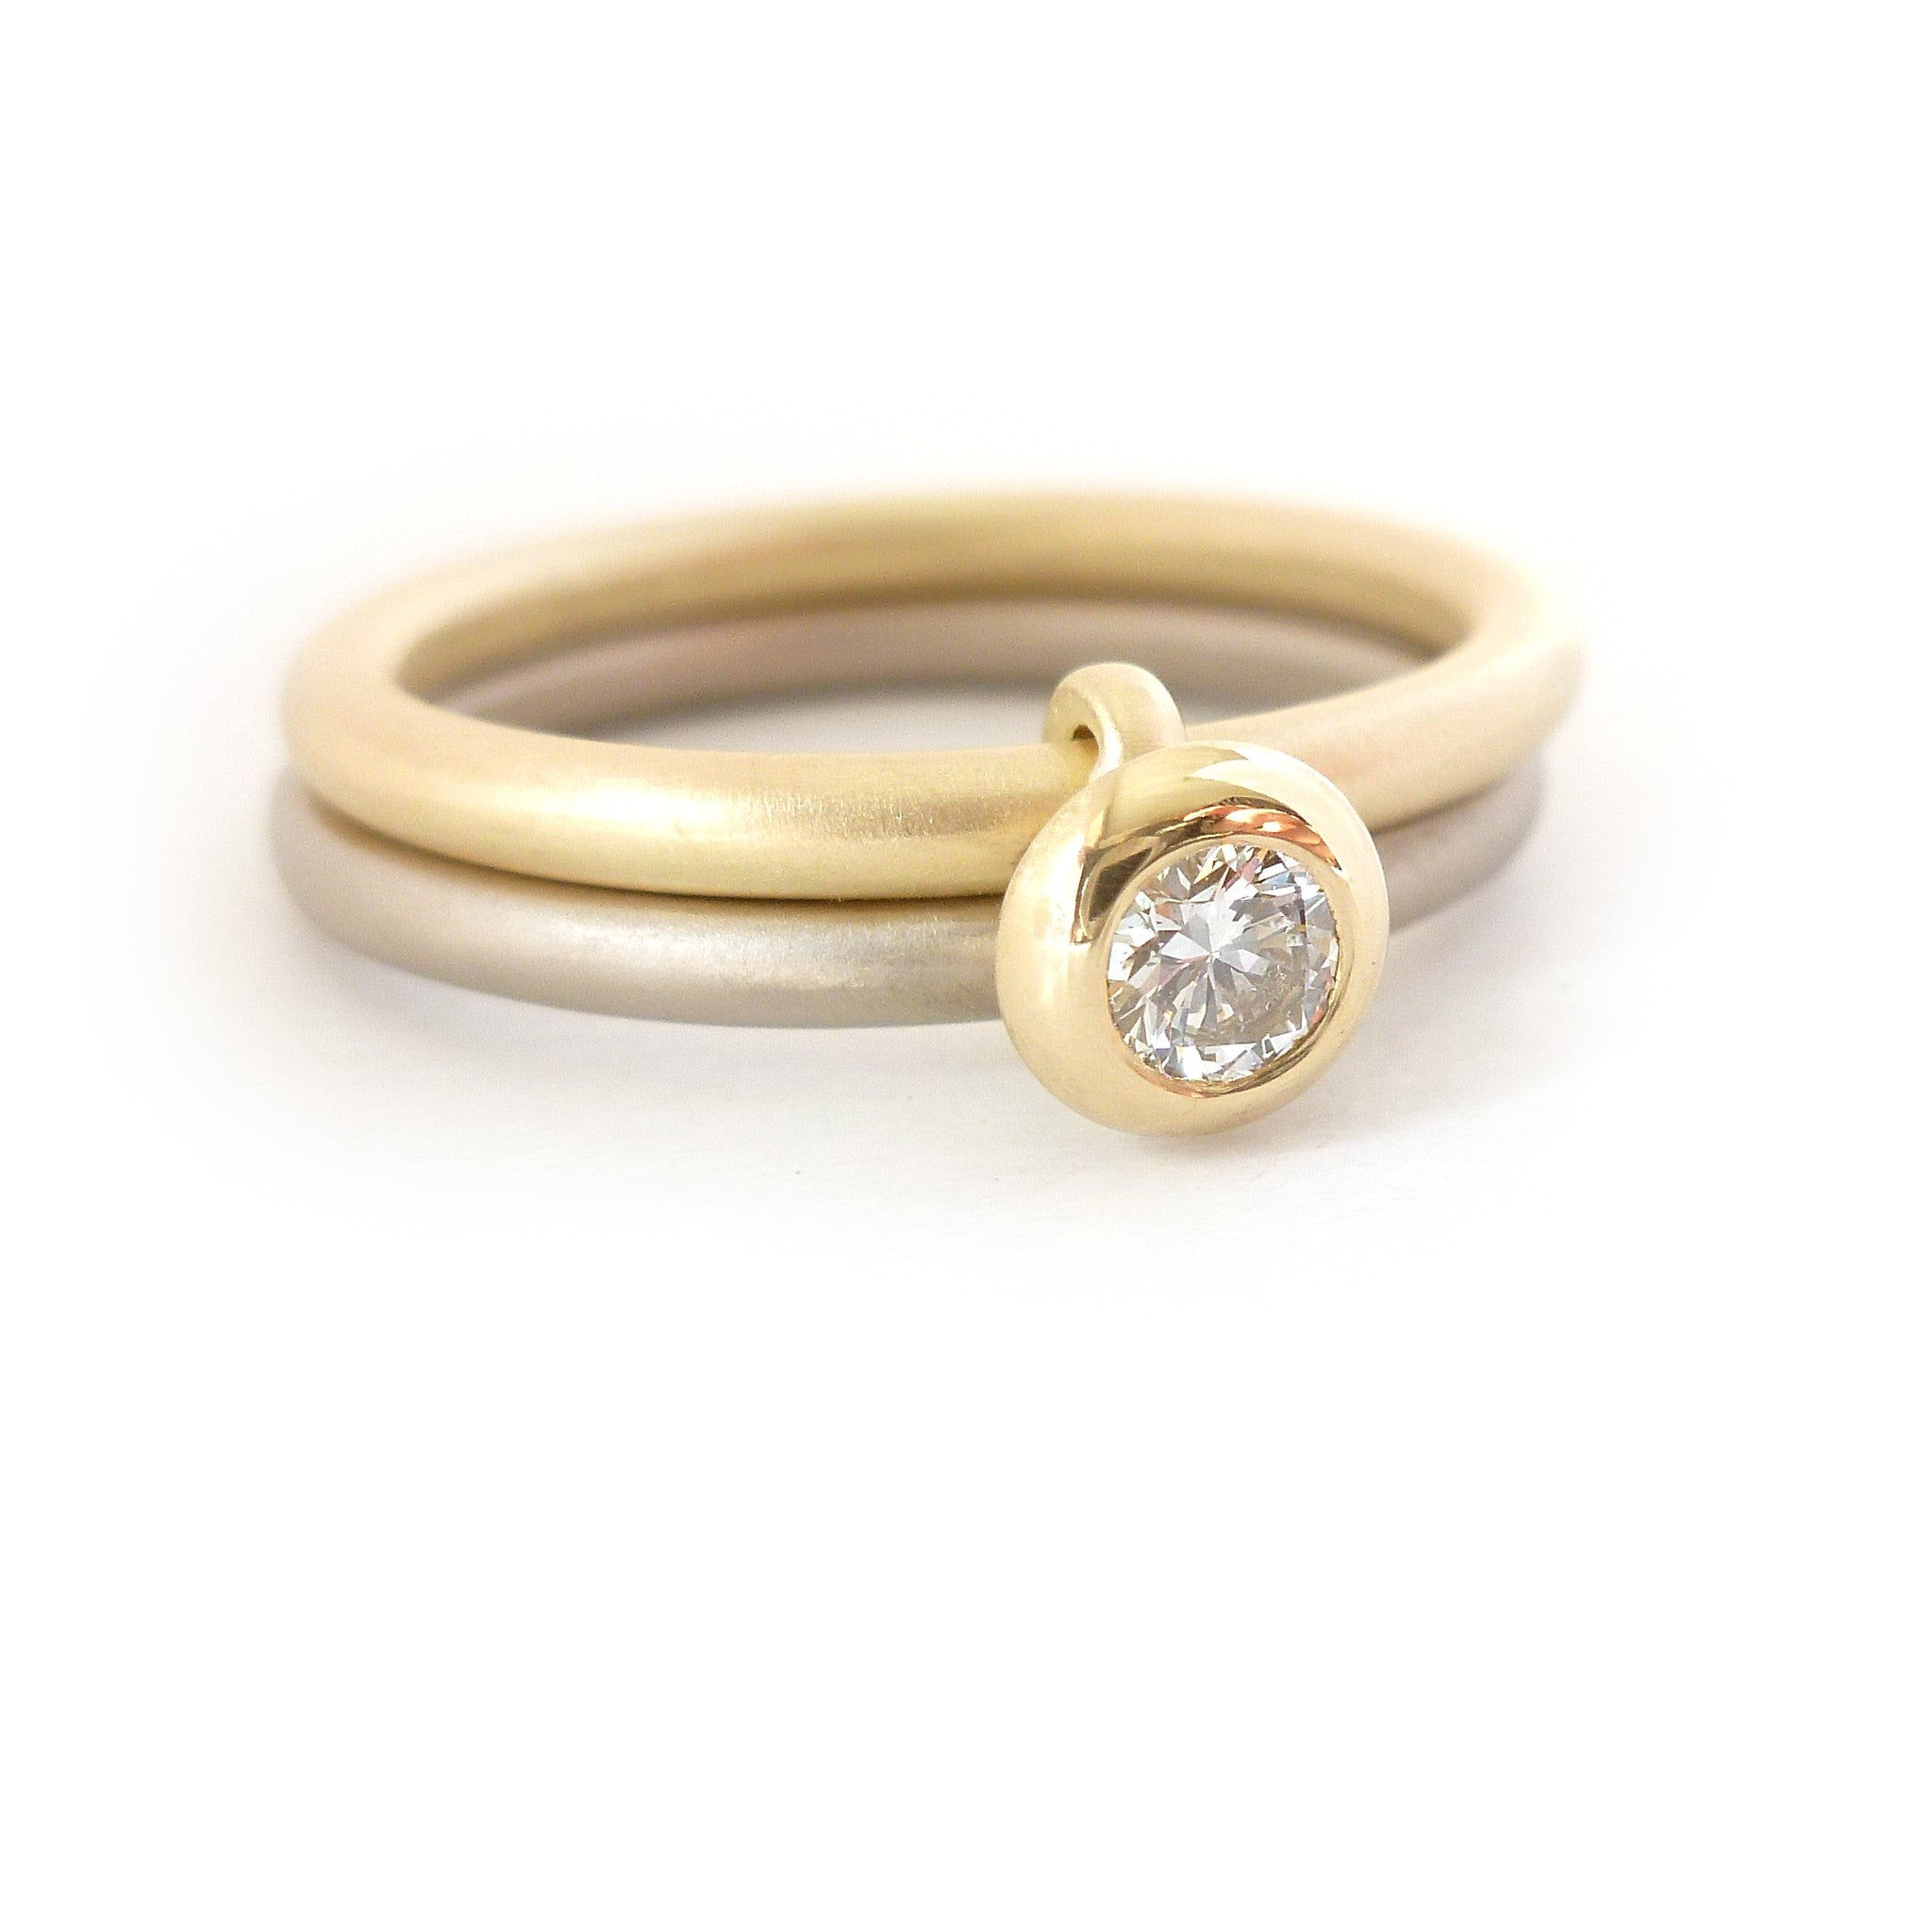 rings band london bespoke rachel gold wedding pages white ring grey engagement boston diamond and